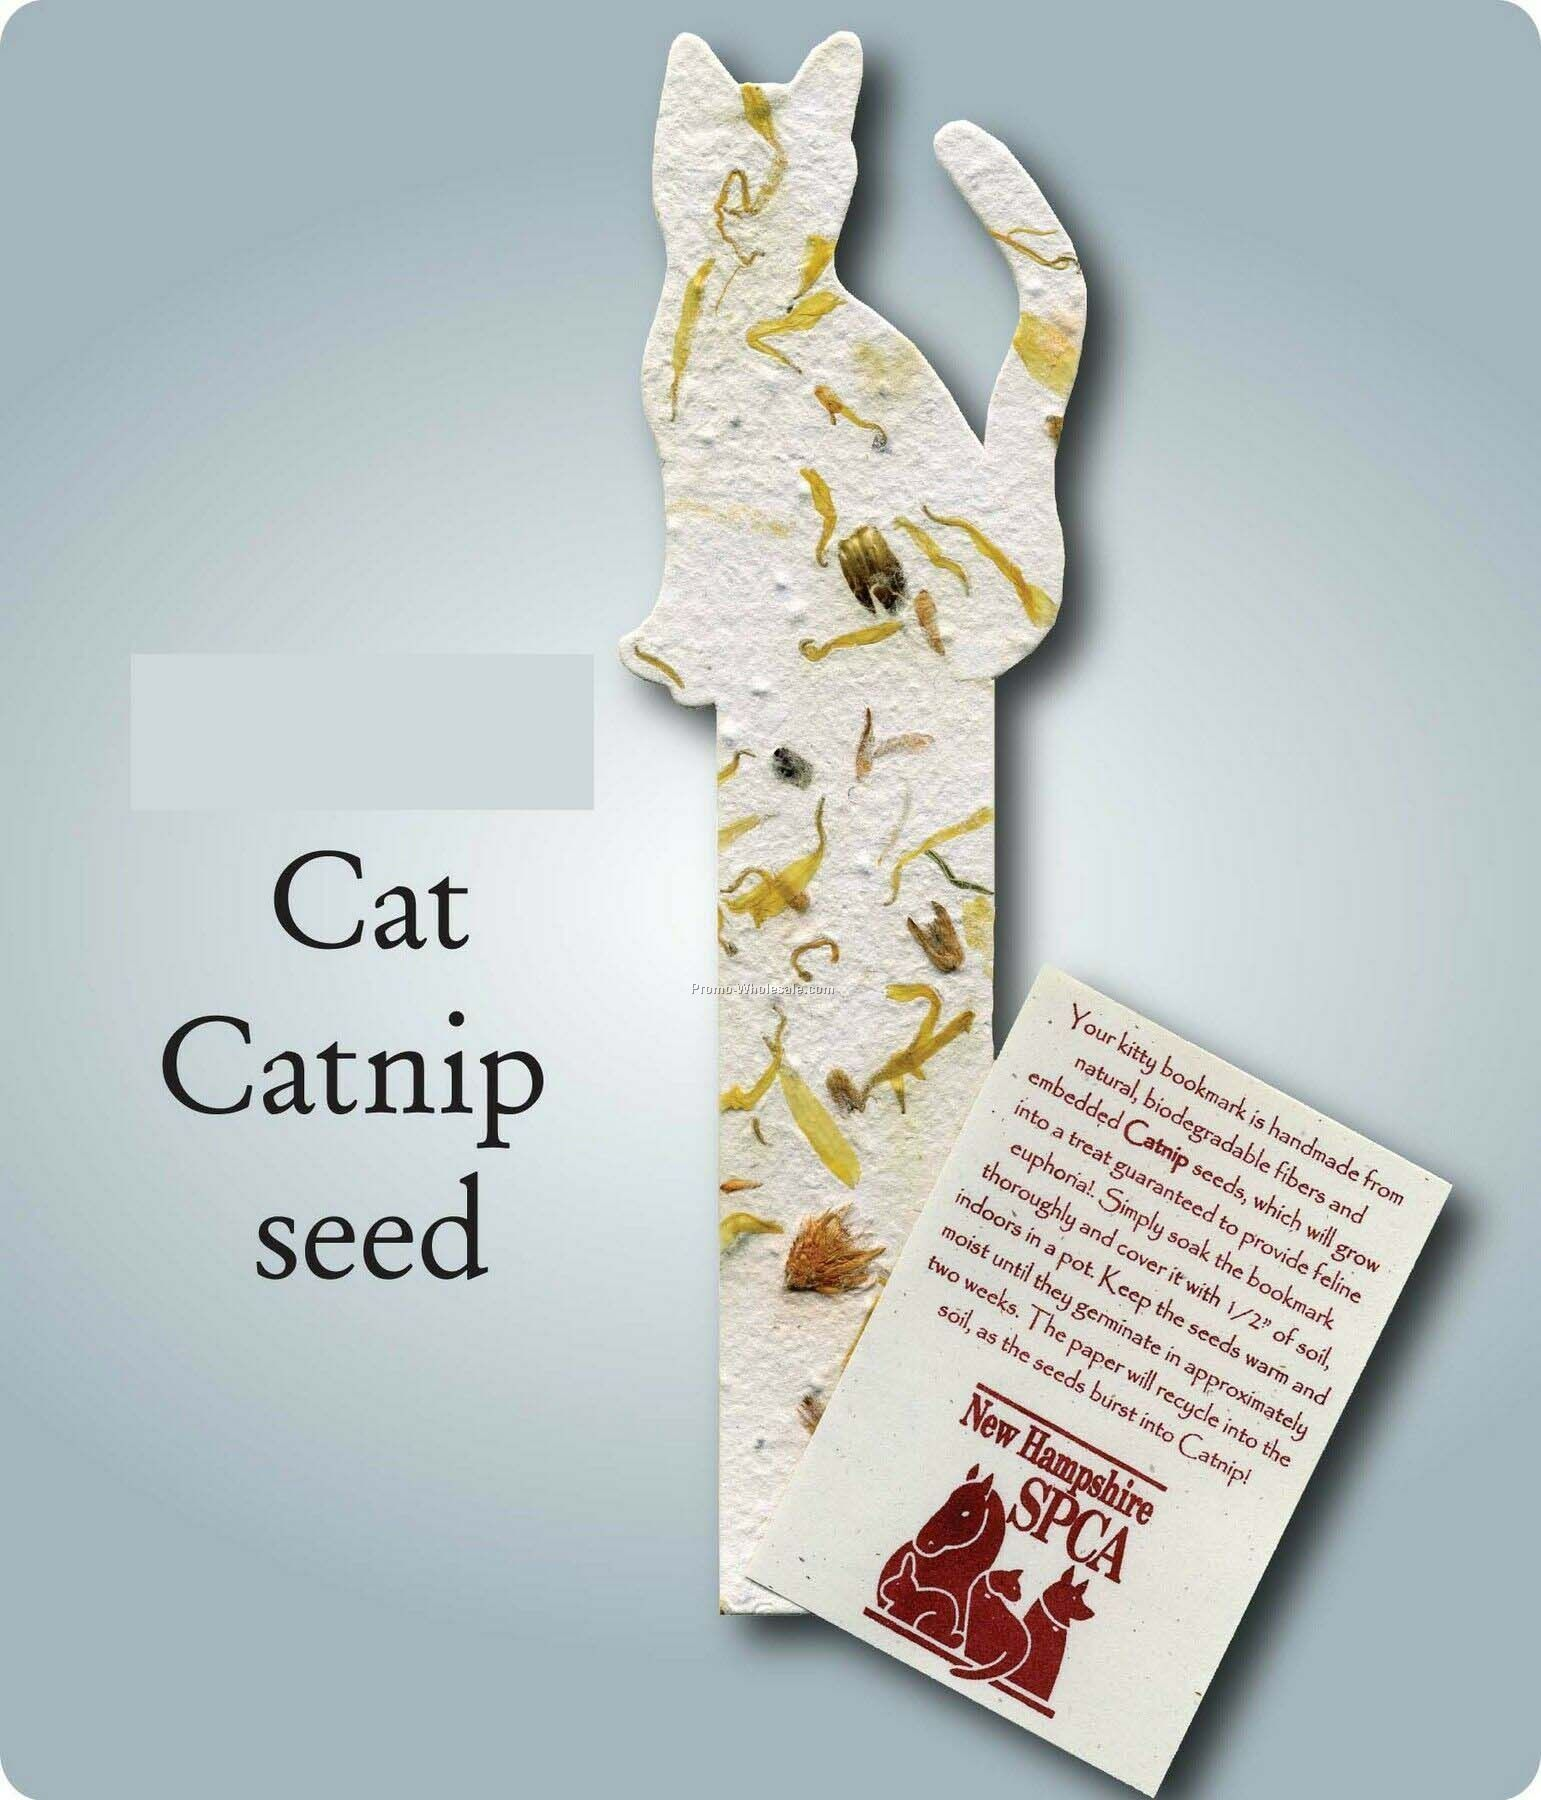 Cat Bookmark Embedded W Catnip Seed Bookmarks Pinterest Bookmarks